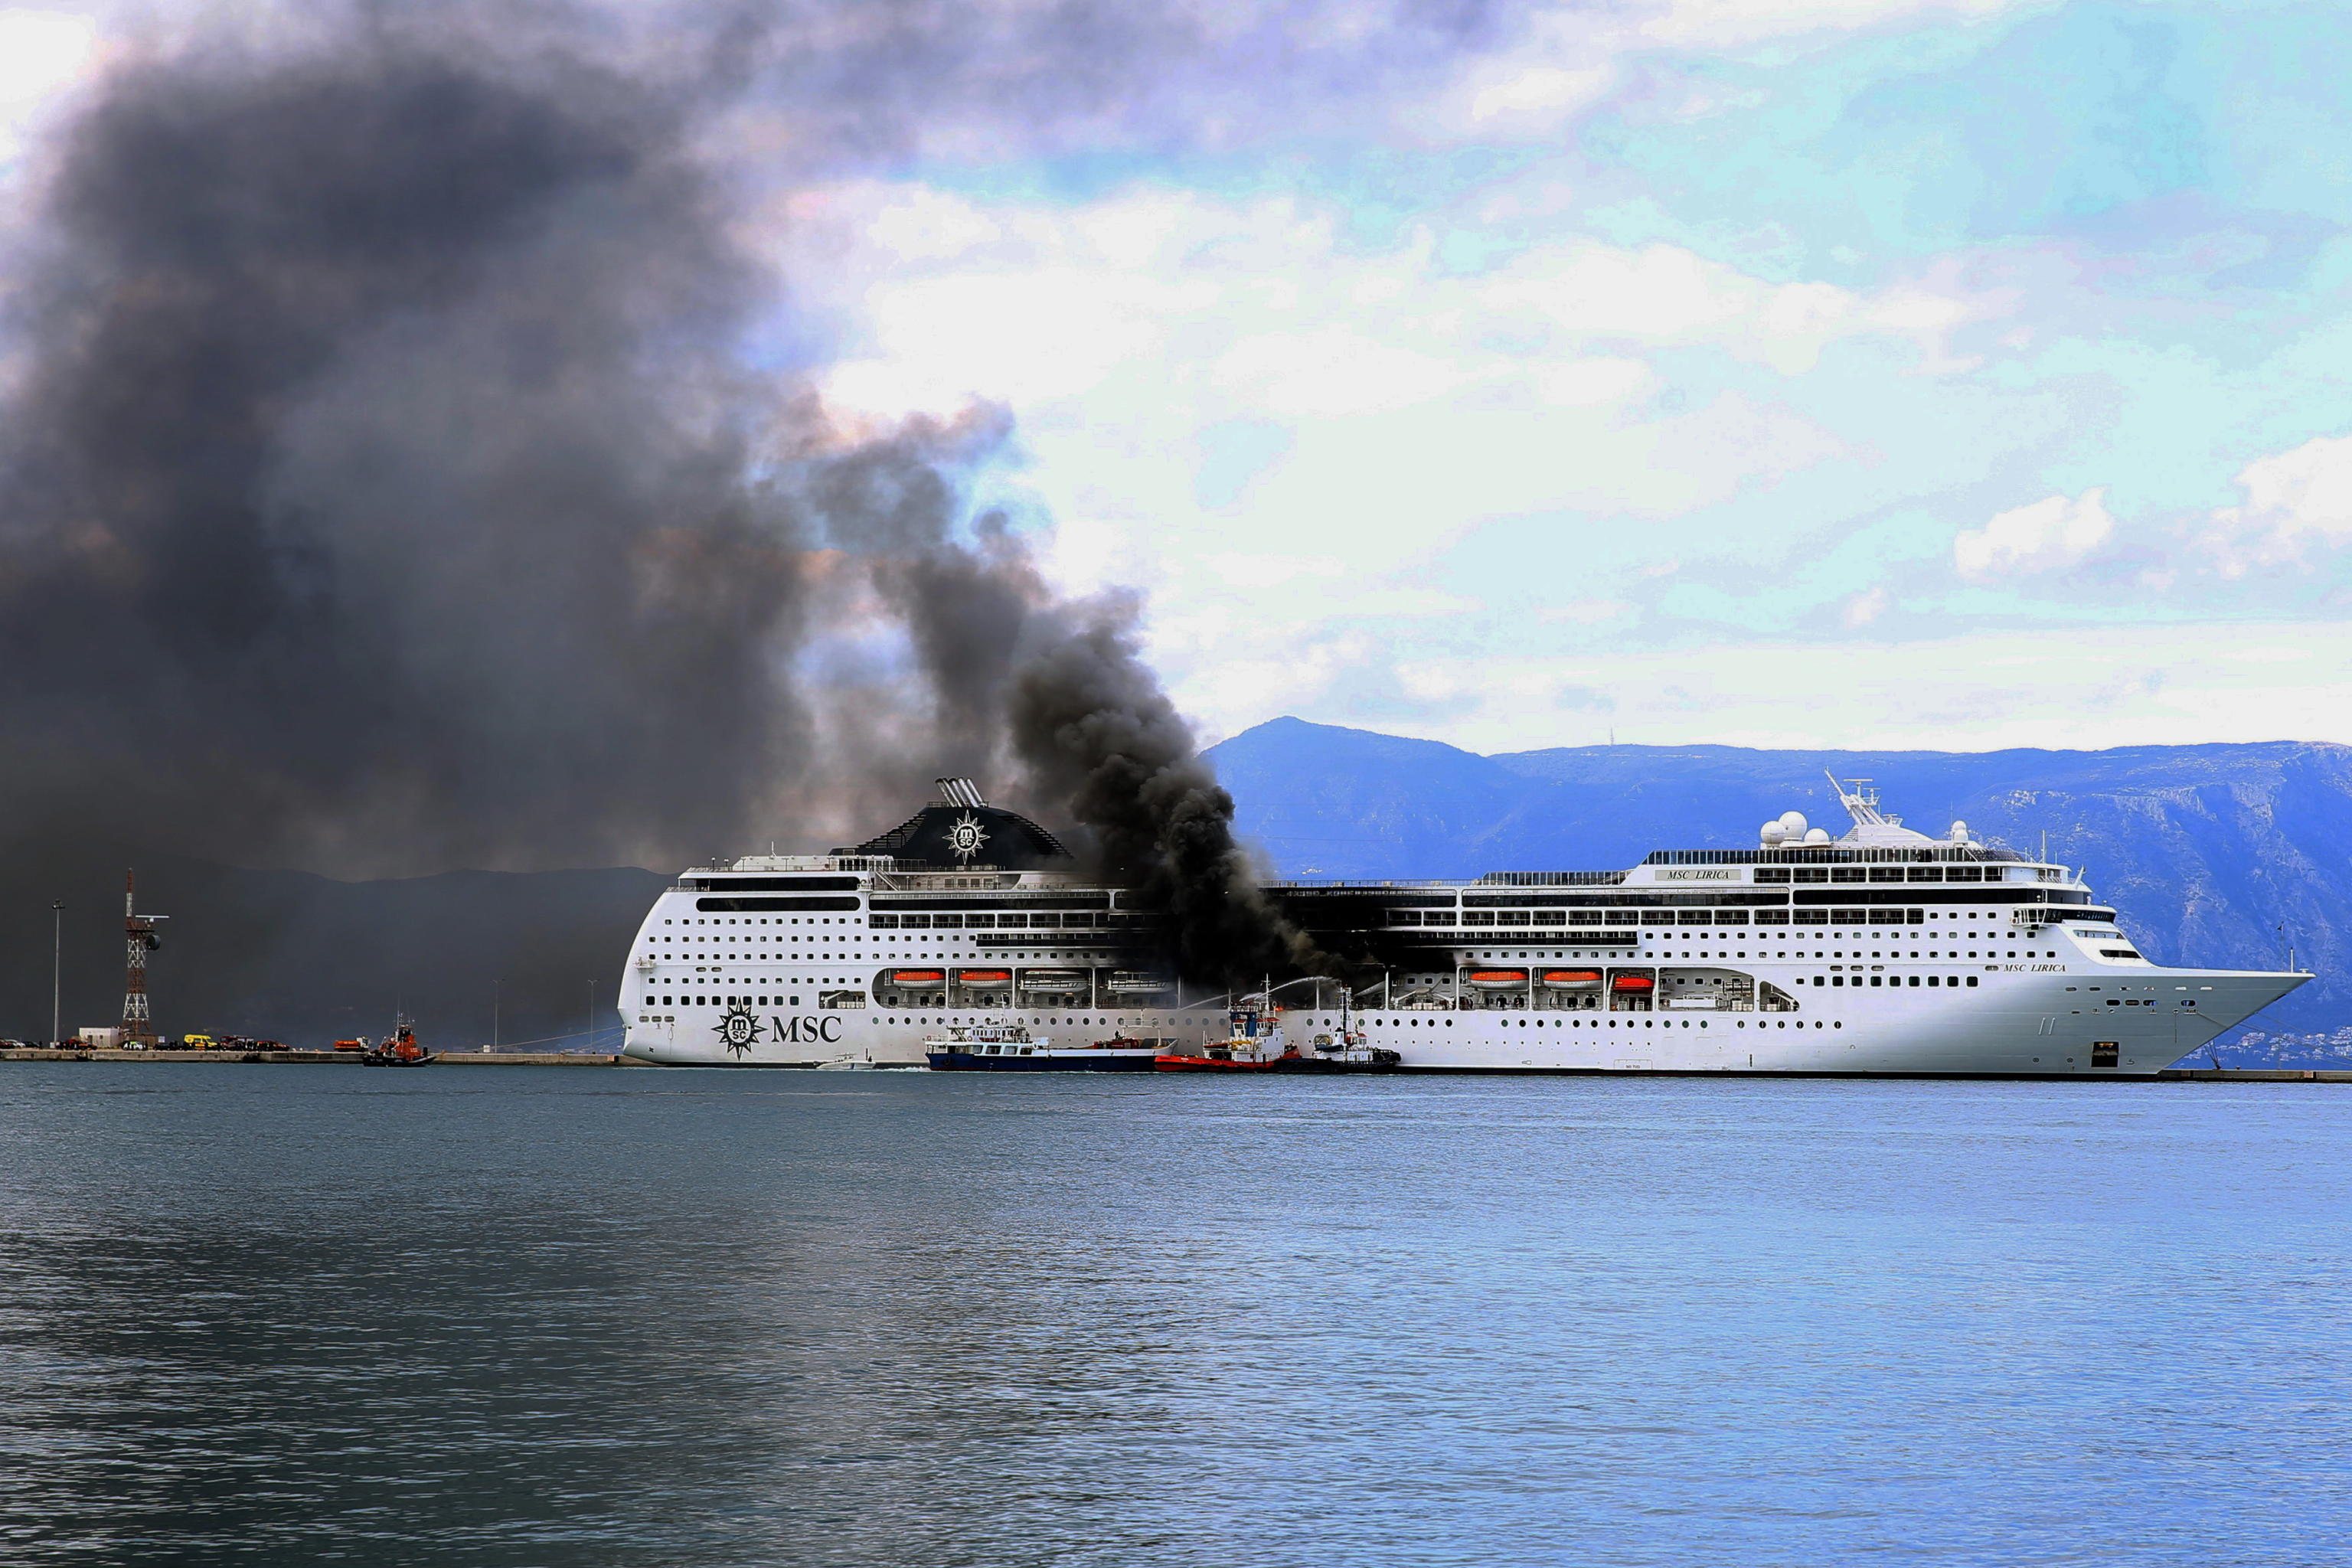 epa09069959 A fire broke out  on the 'MSC Lirica' cruiseship on 12 March 2021, while it was tied at the Corfu port, Ionian Sea, Greece, since January 30 for the winter season. Onboard were crew members only. The cause of the fire, which broke out at starboard, was not made known as of this writing. Firefighters were trying to put out the blaze.  EPA/STAMATIS KATAPODIS